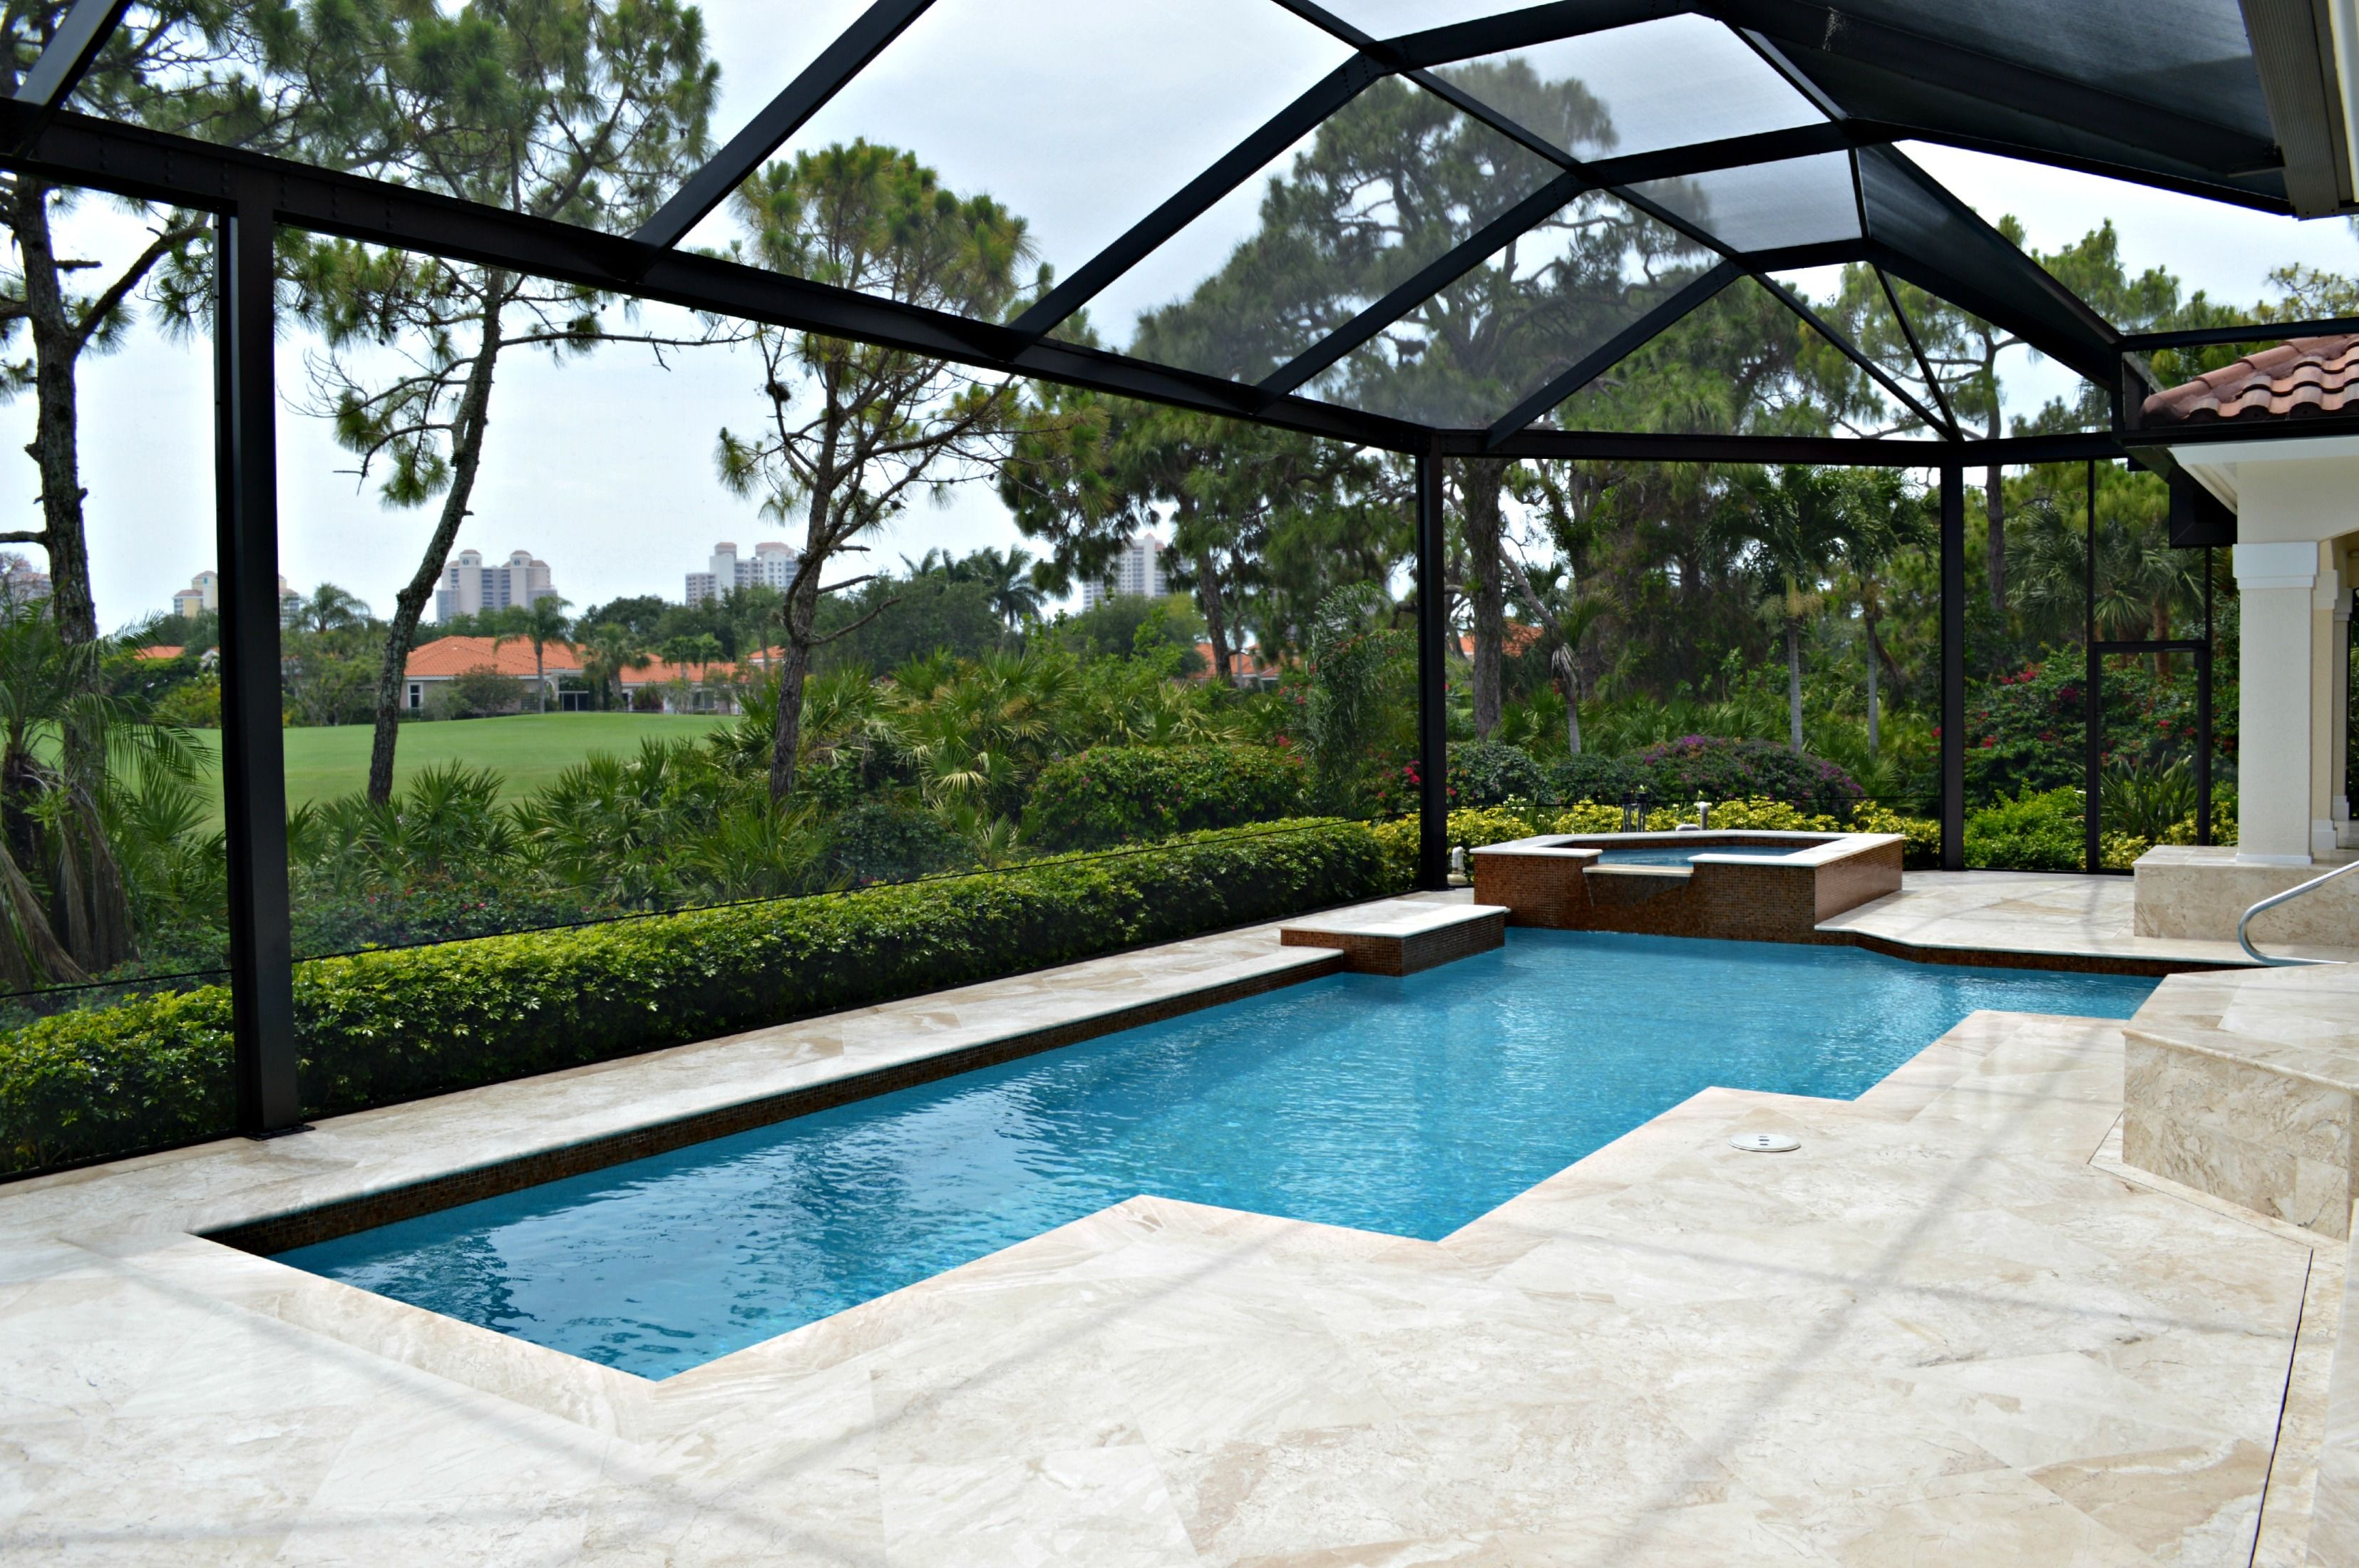 Choosing Screen Enclosures What Size Is Right For Me Hendry Aluminum Screen Enclosures Florida Pool Screened Pool